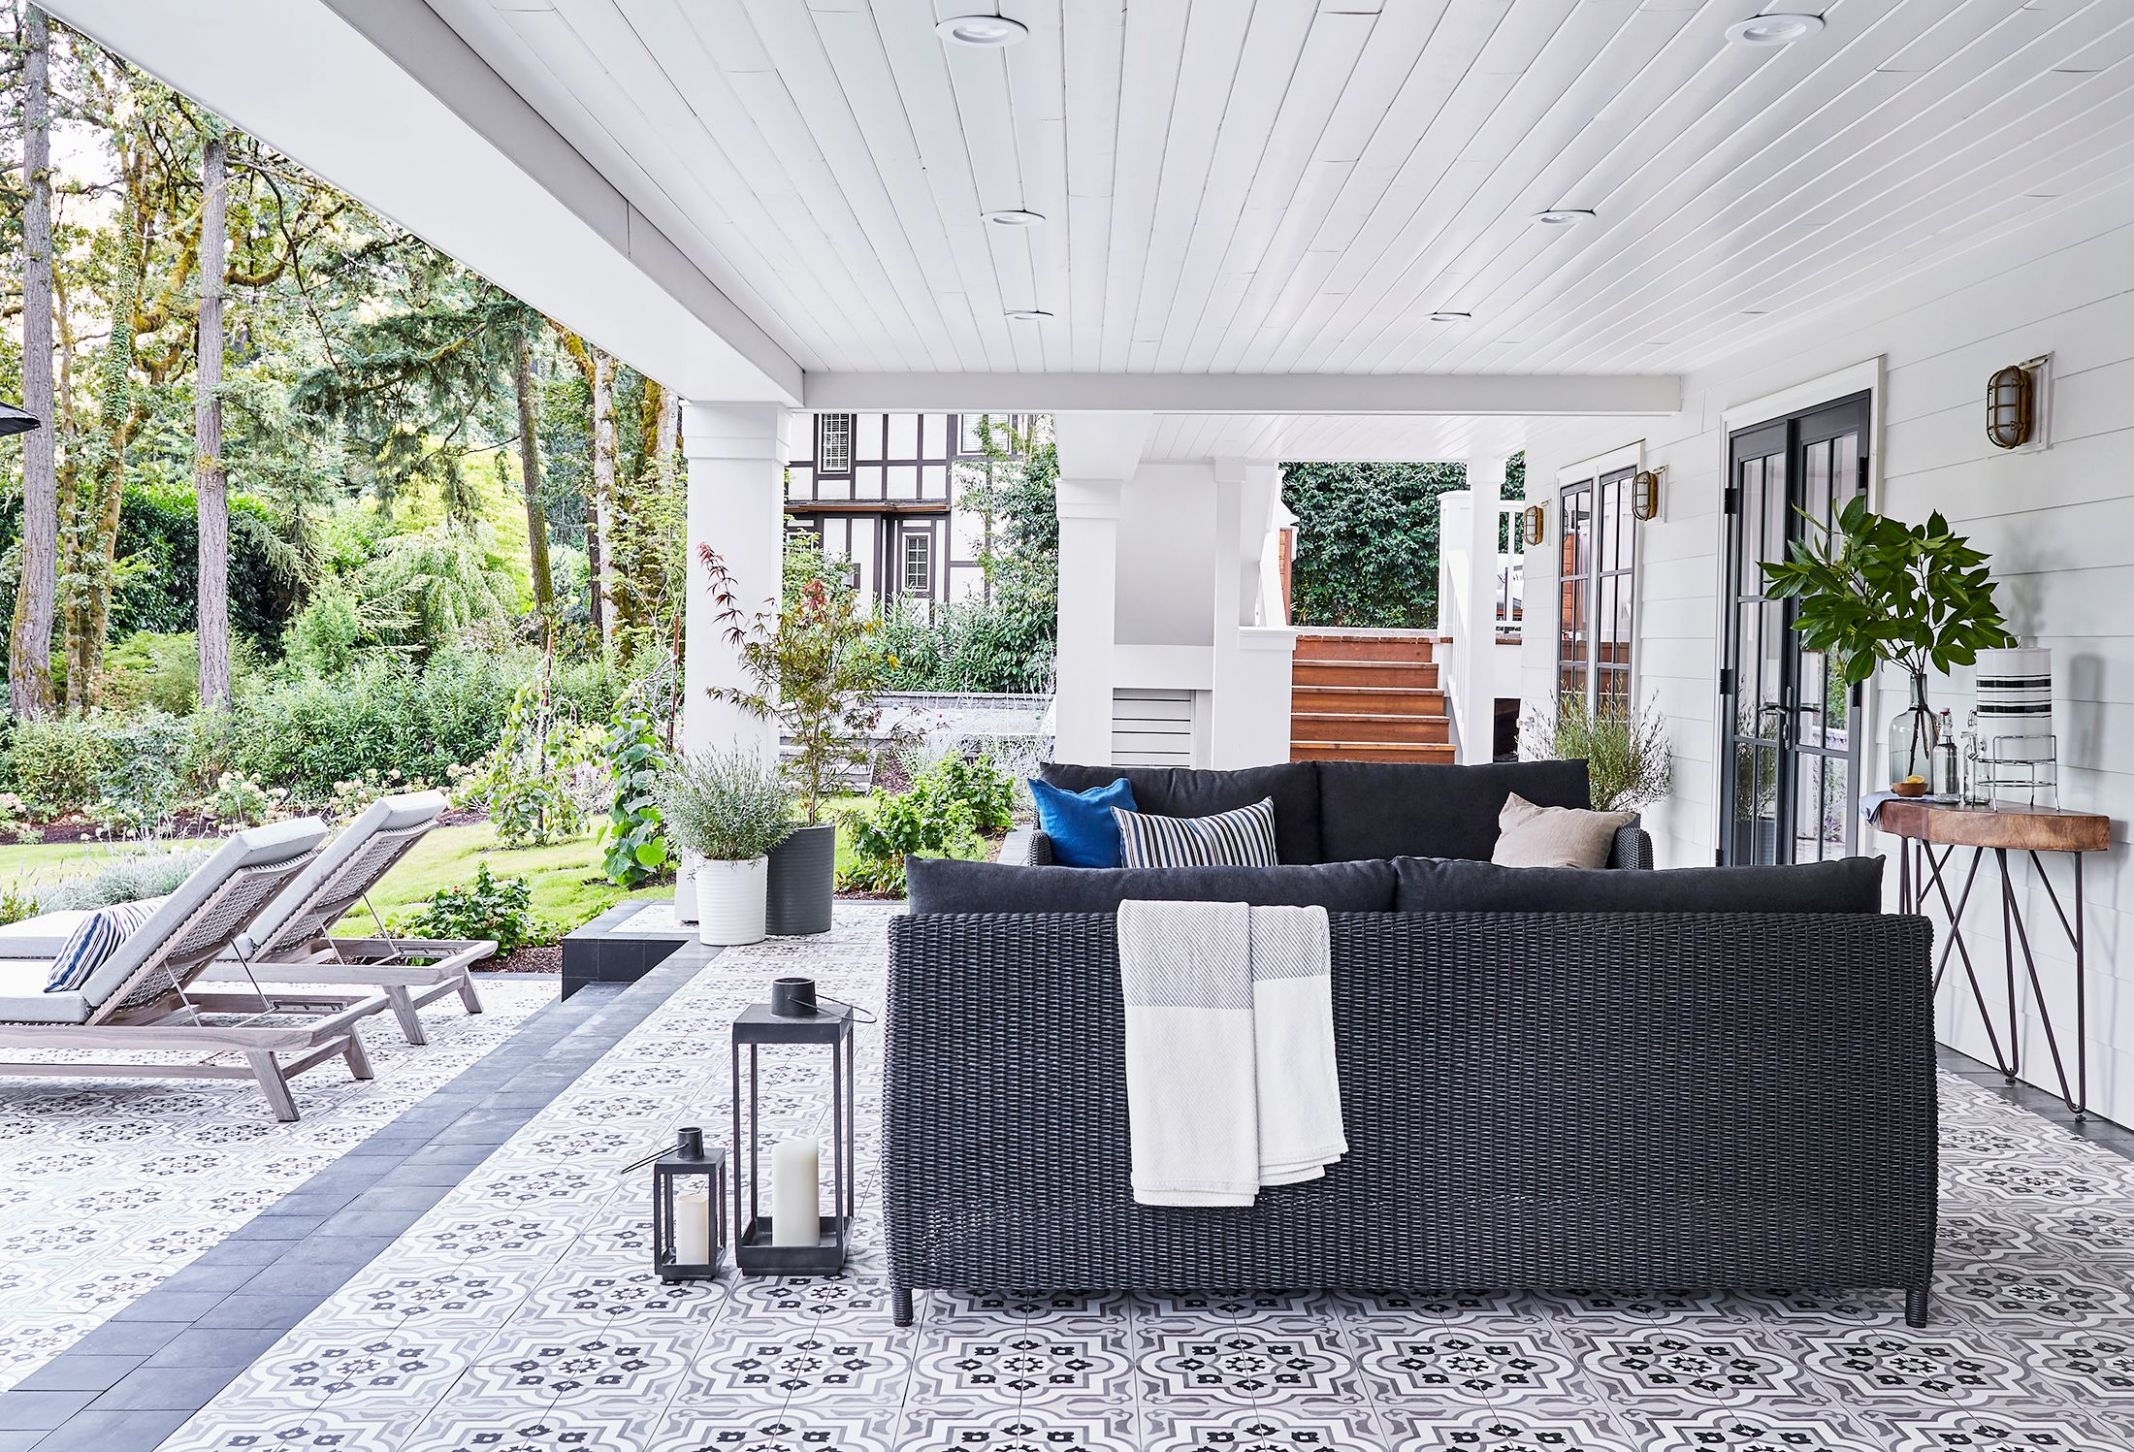 Best Patio Ideas for 10 - Stylish Outdoor Patio Design Ideas and ..